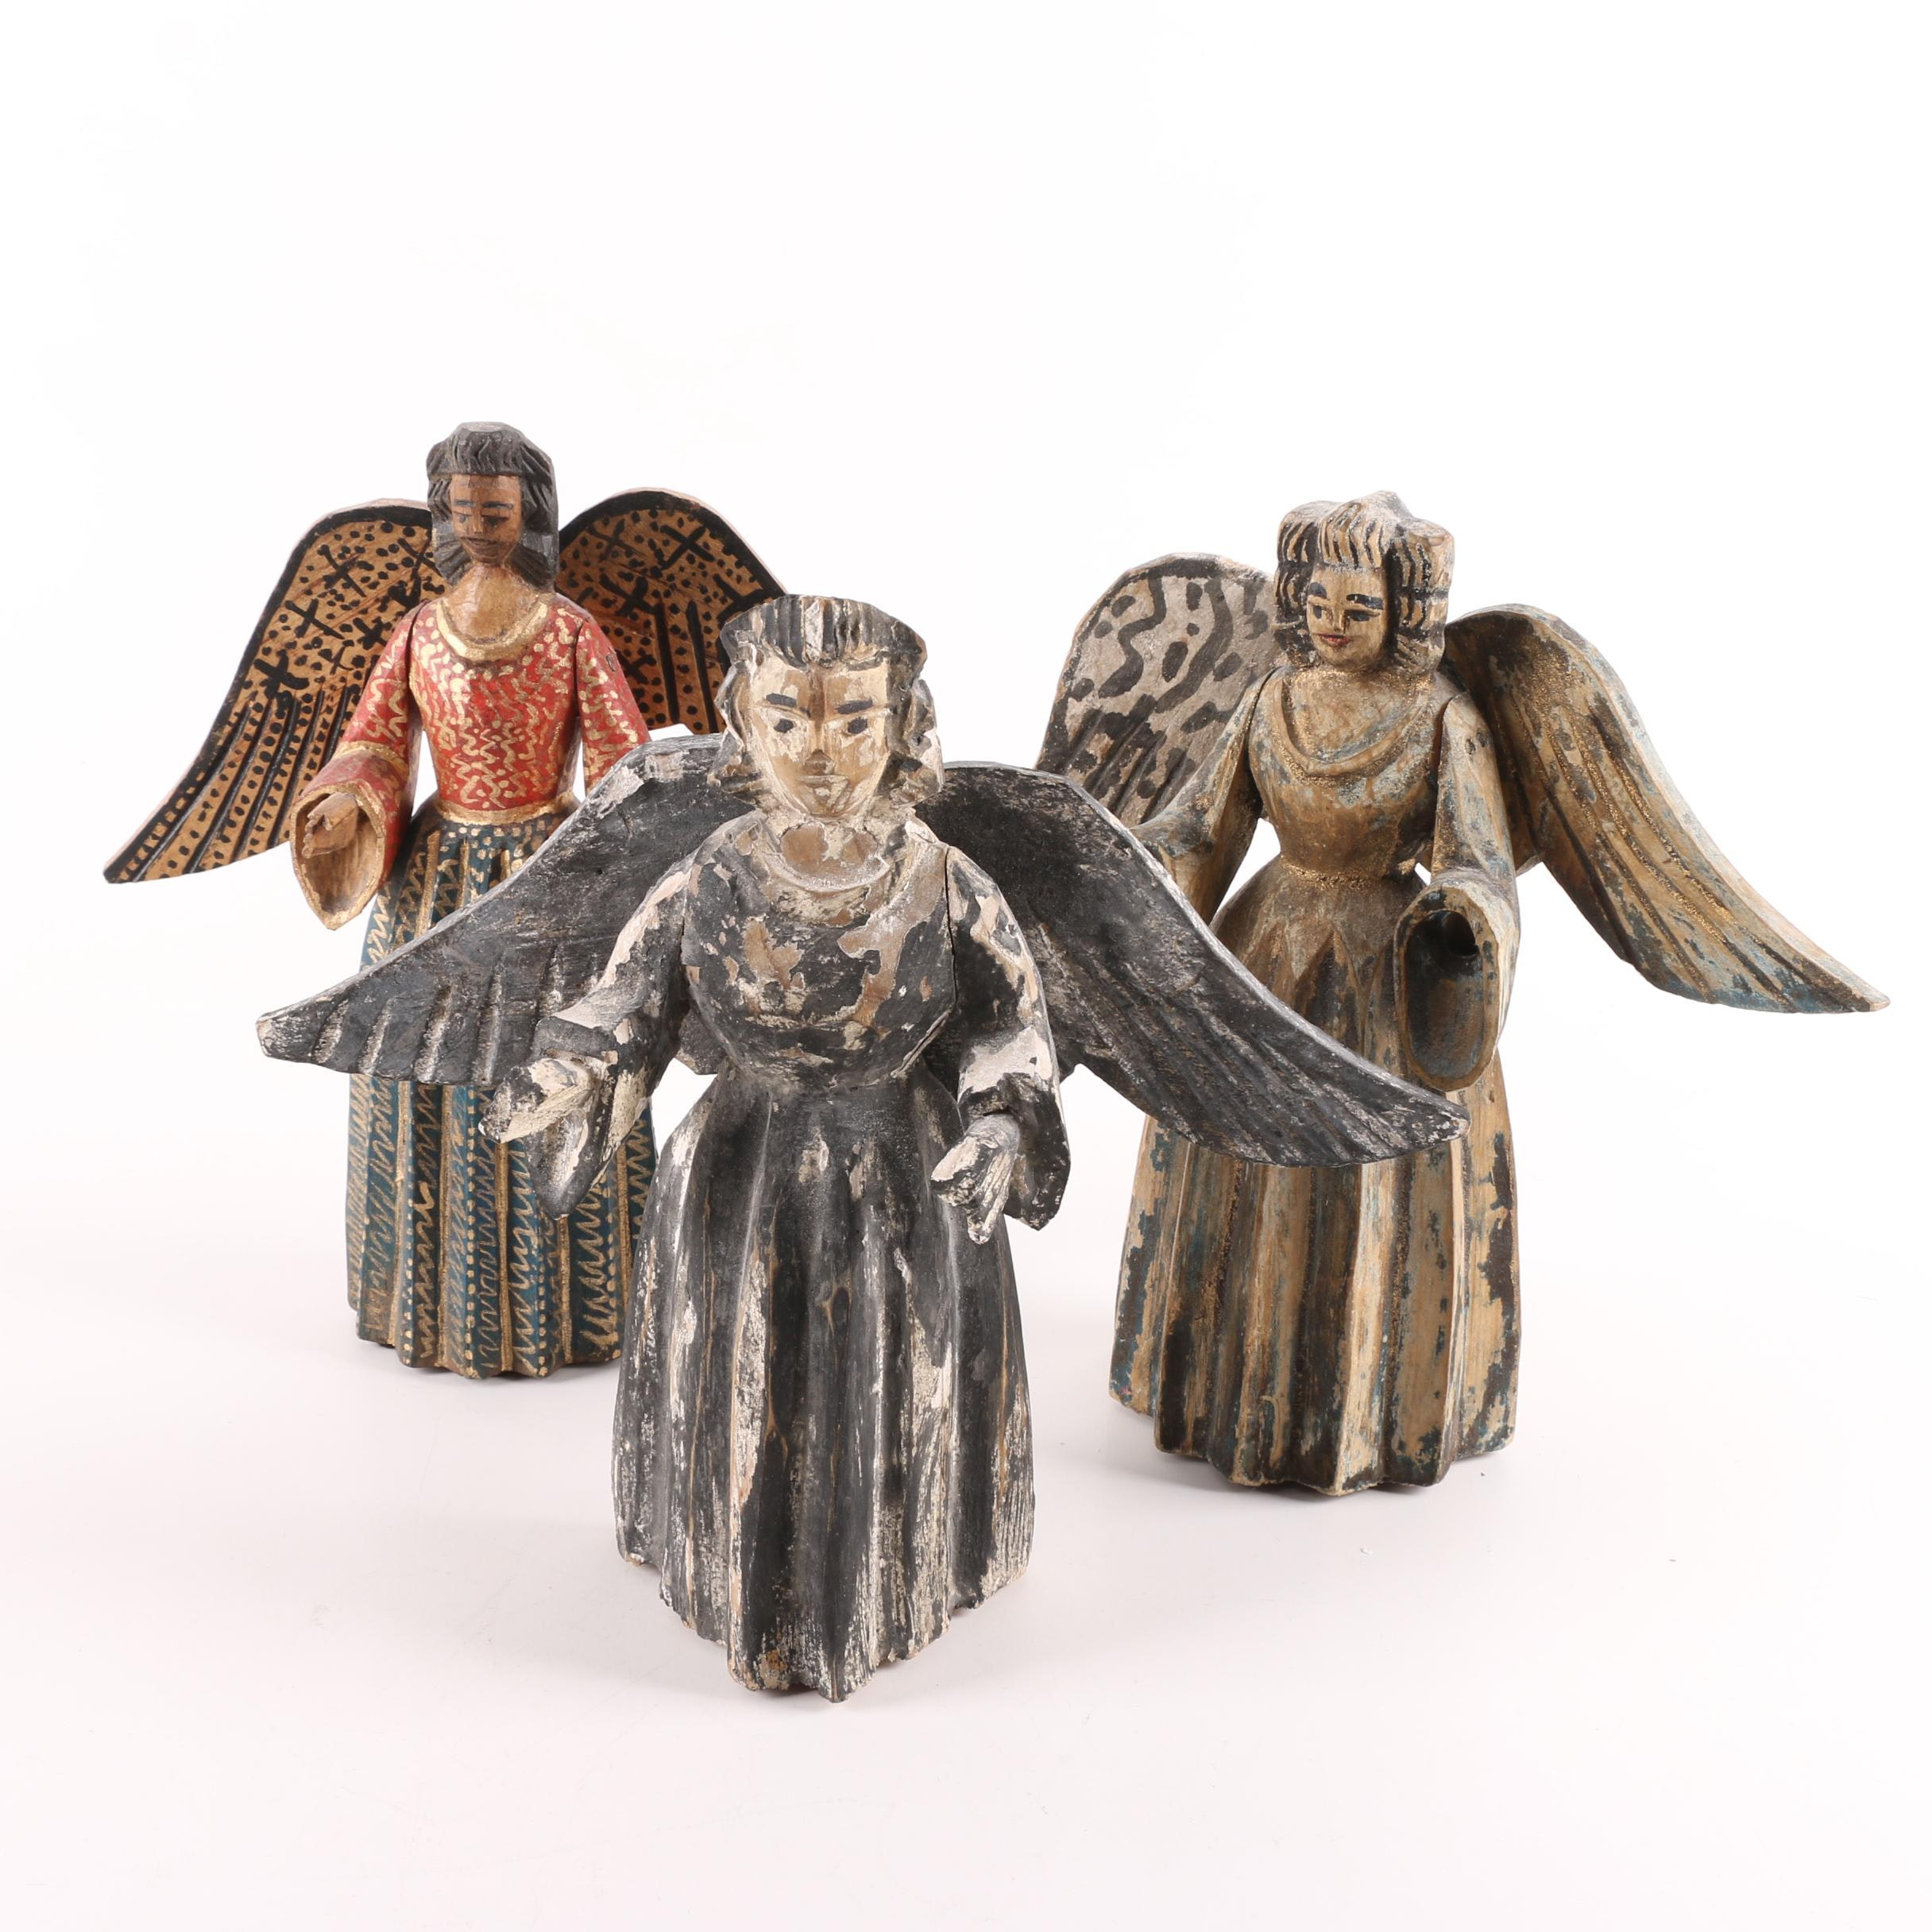 Carved Folk Art-Style Angels